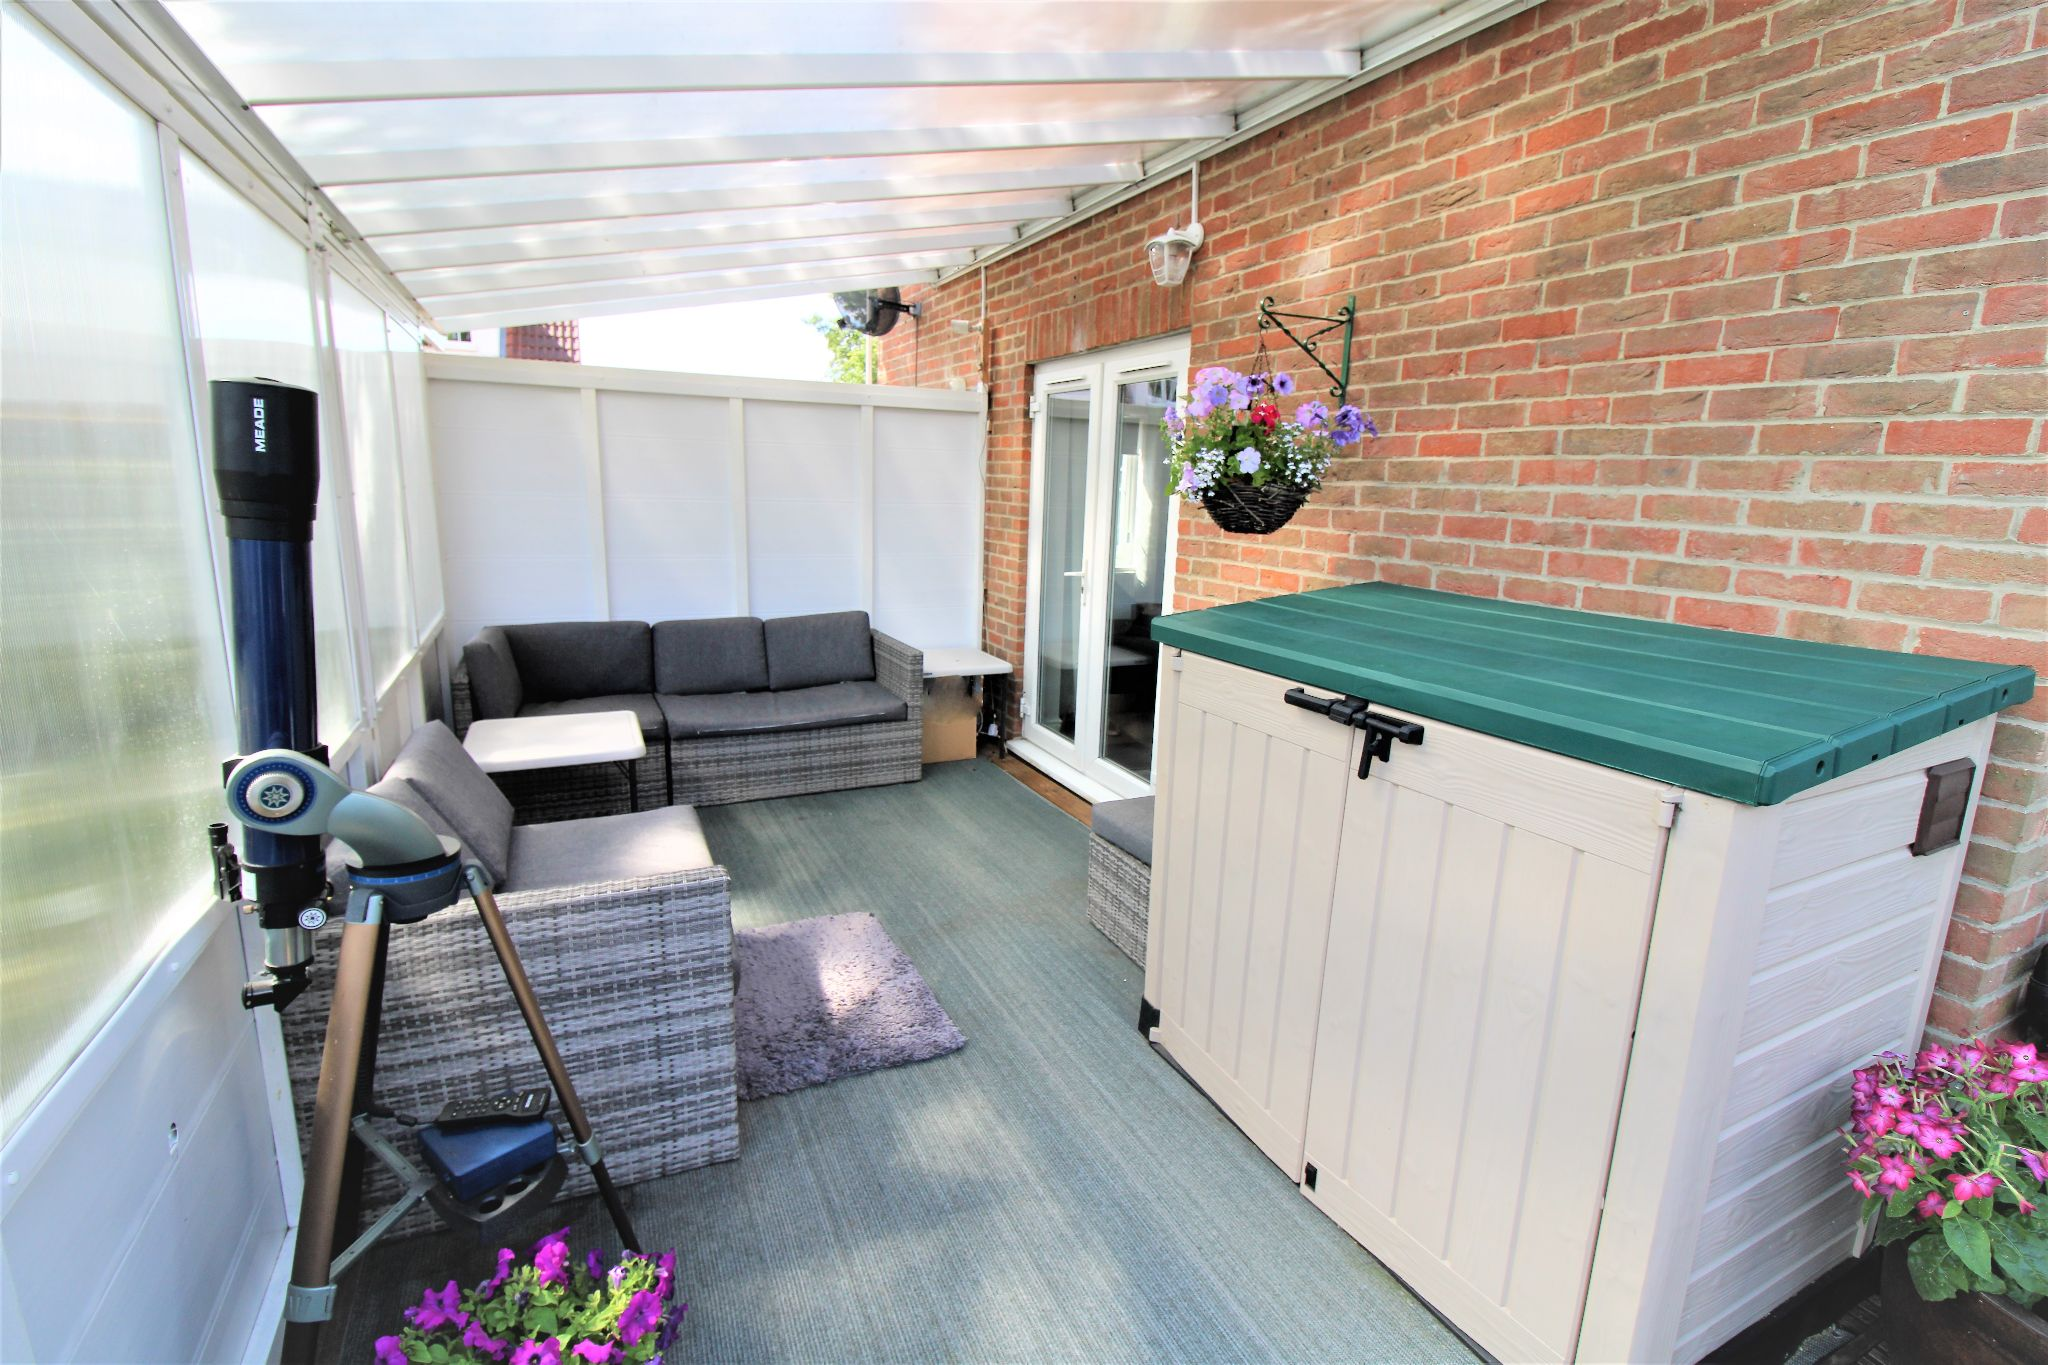 5 Bedroom Detached House For Sale - Covered Decking